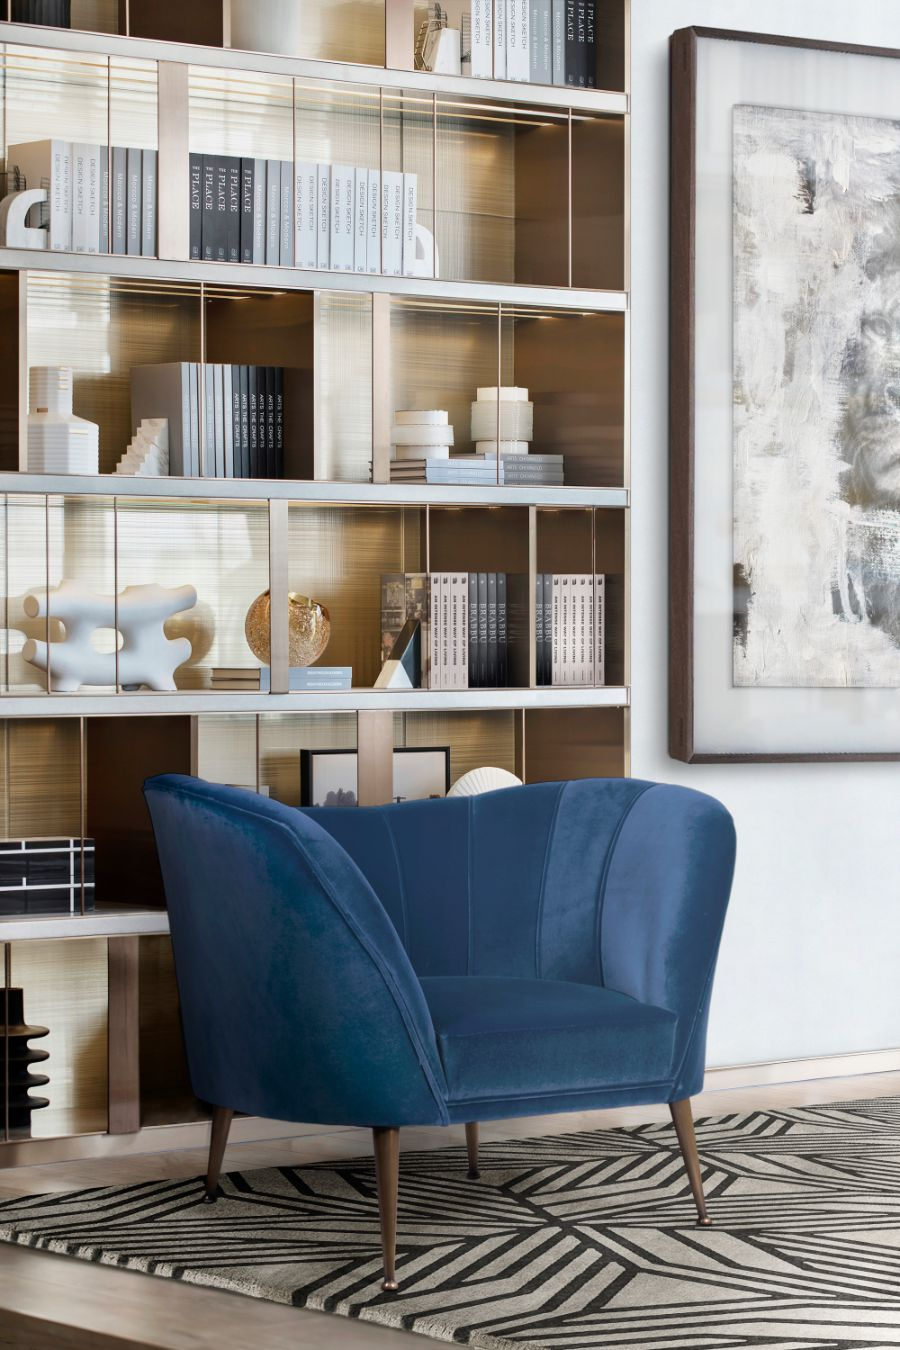 20 Modern Armchairs You Will Need To Get A Fierce Design modern armchairs 20 Modern Armchairs You Will Need To Get A Fierce Design Modern Designed Armchairs Top 20 of Timeless Designs for Every Decor 10